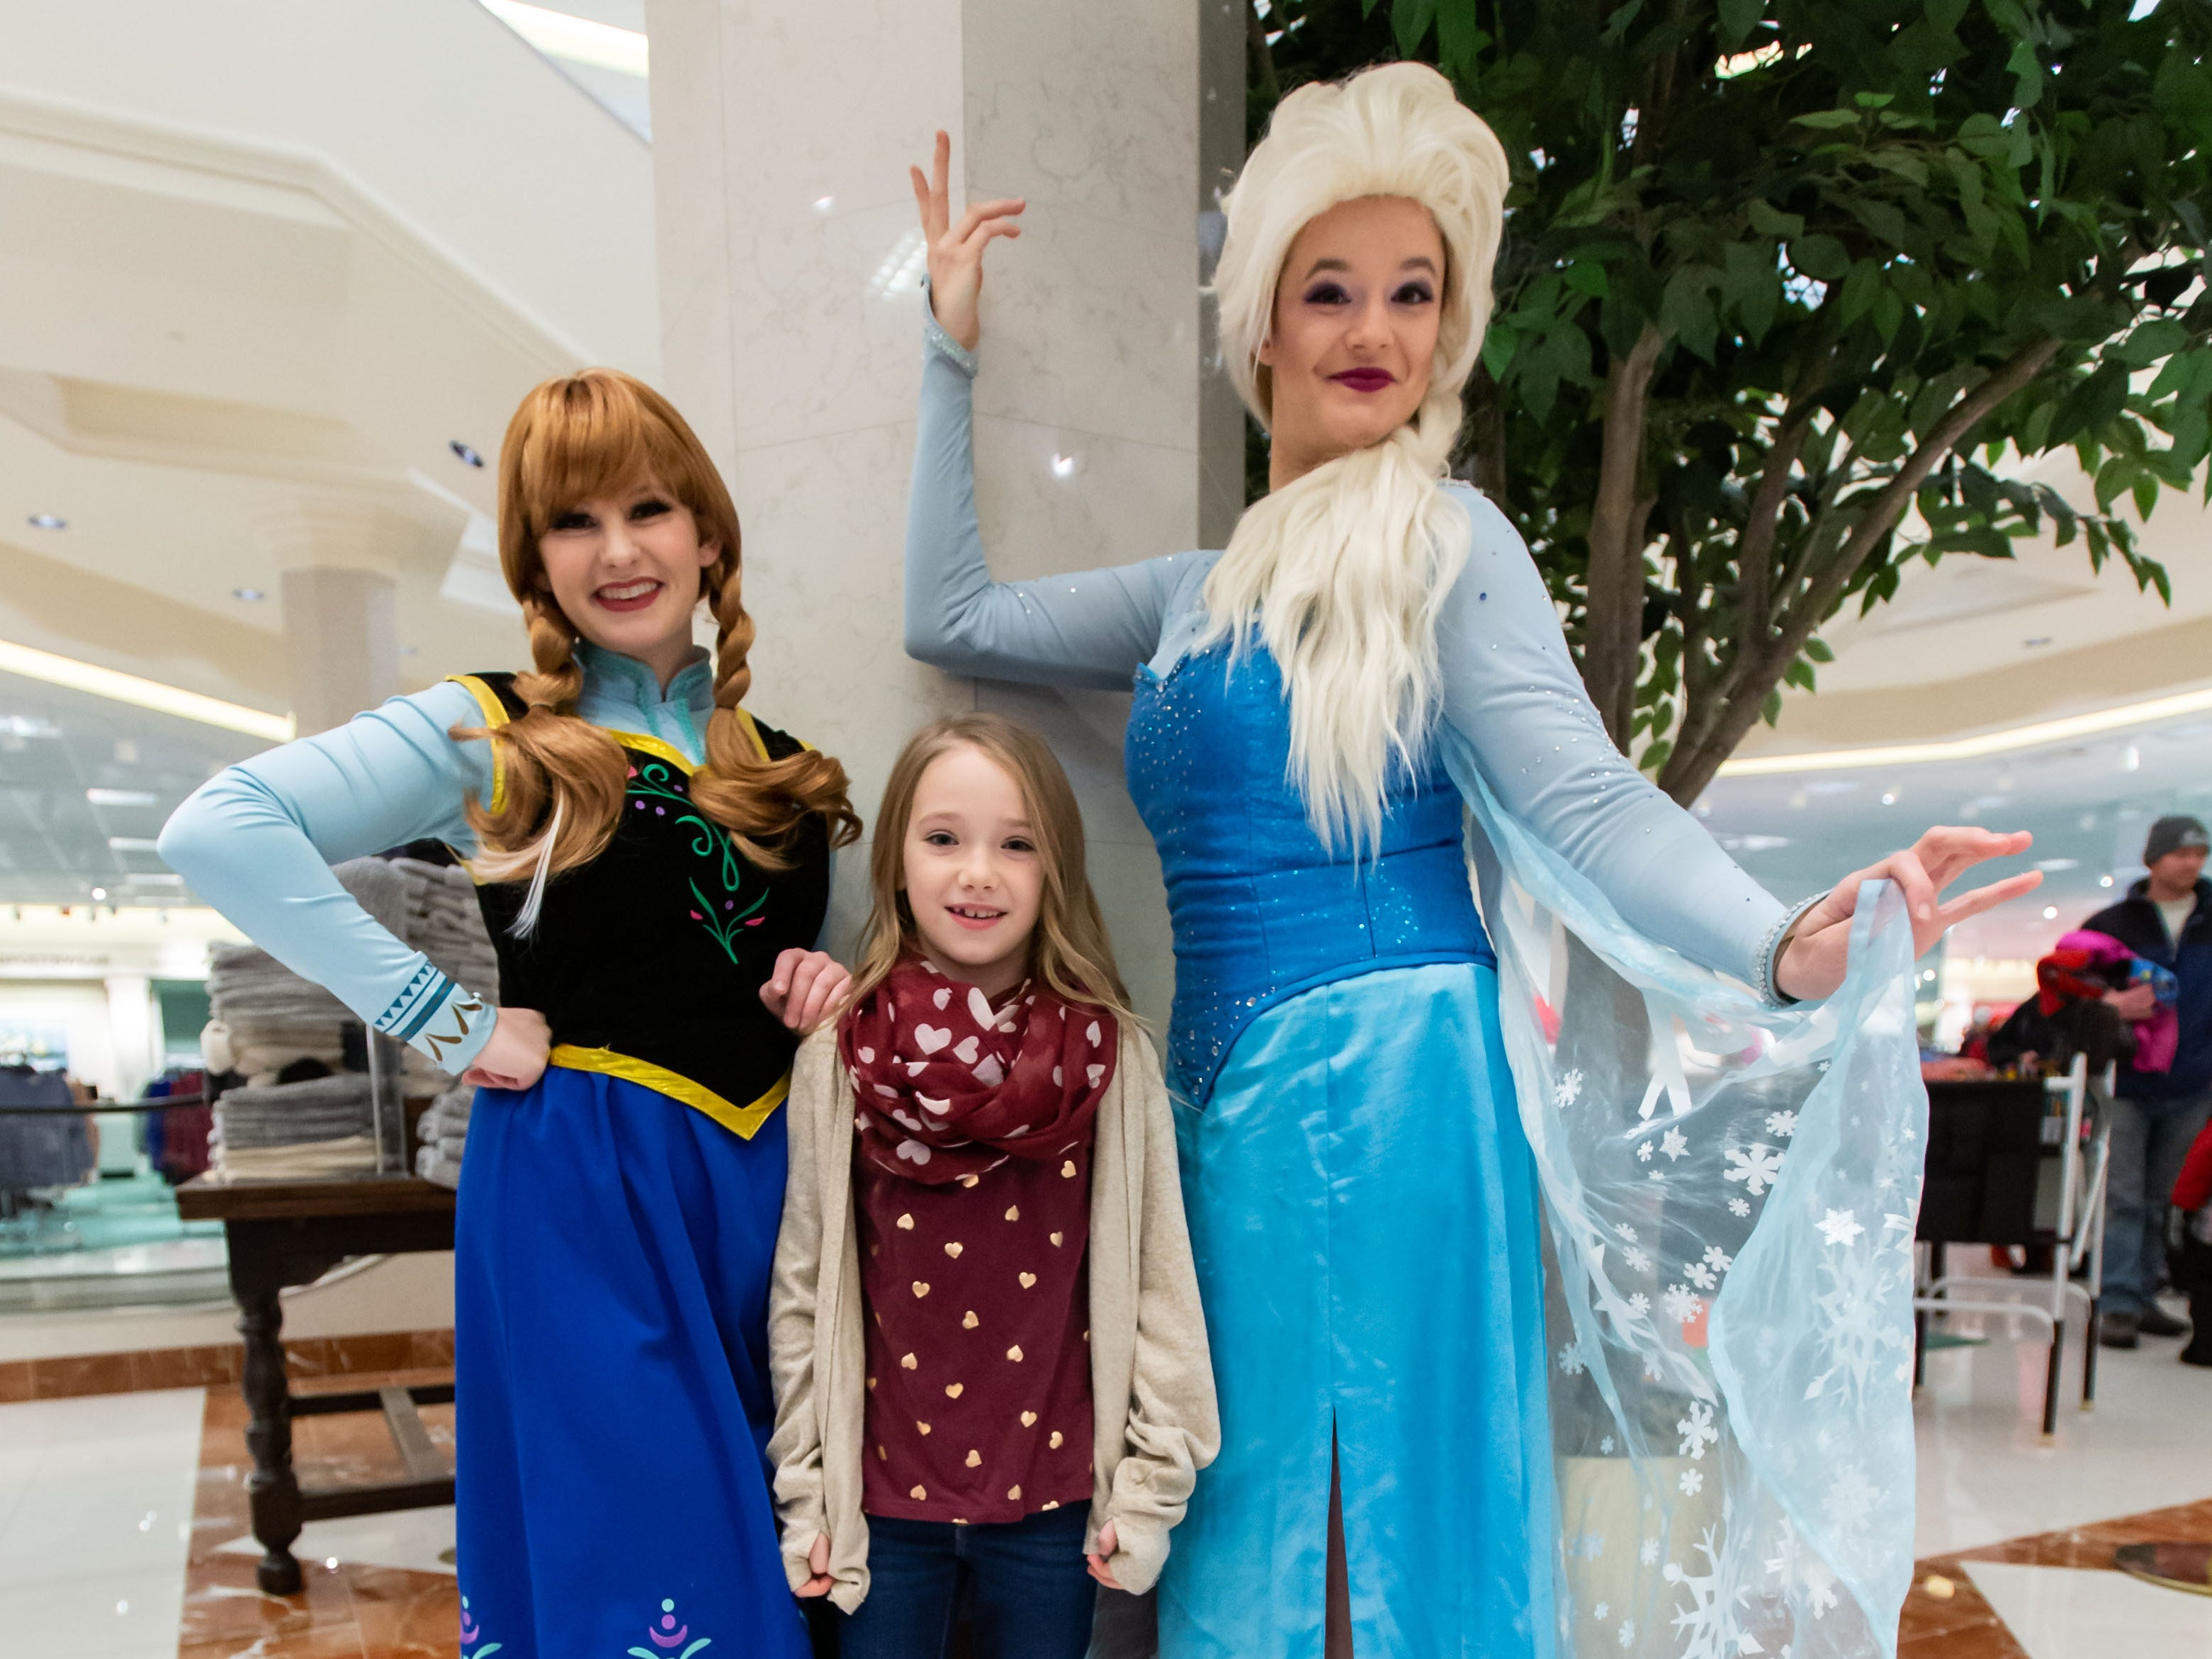 """Brinley O'Boyle, 7, of Milwaukee poses for a photo with the """"Frozen"""" princesses, Elsa and Anna, inside the Von Maur department store during Winter Fest at The Corners of Brookfield on Saturday, Jan. 12, 2019. The event included the Wisconsin State Ice Carving Championships, a screening of the movie """"Frozen"""", face painting, a caricature artist and much more."""